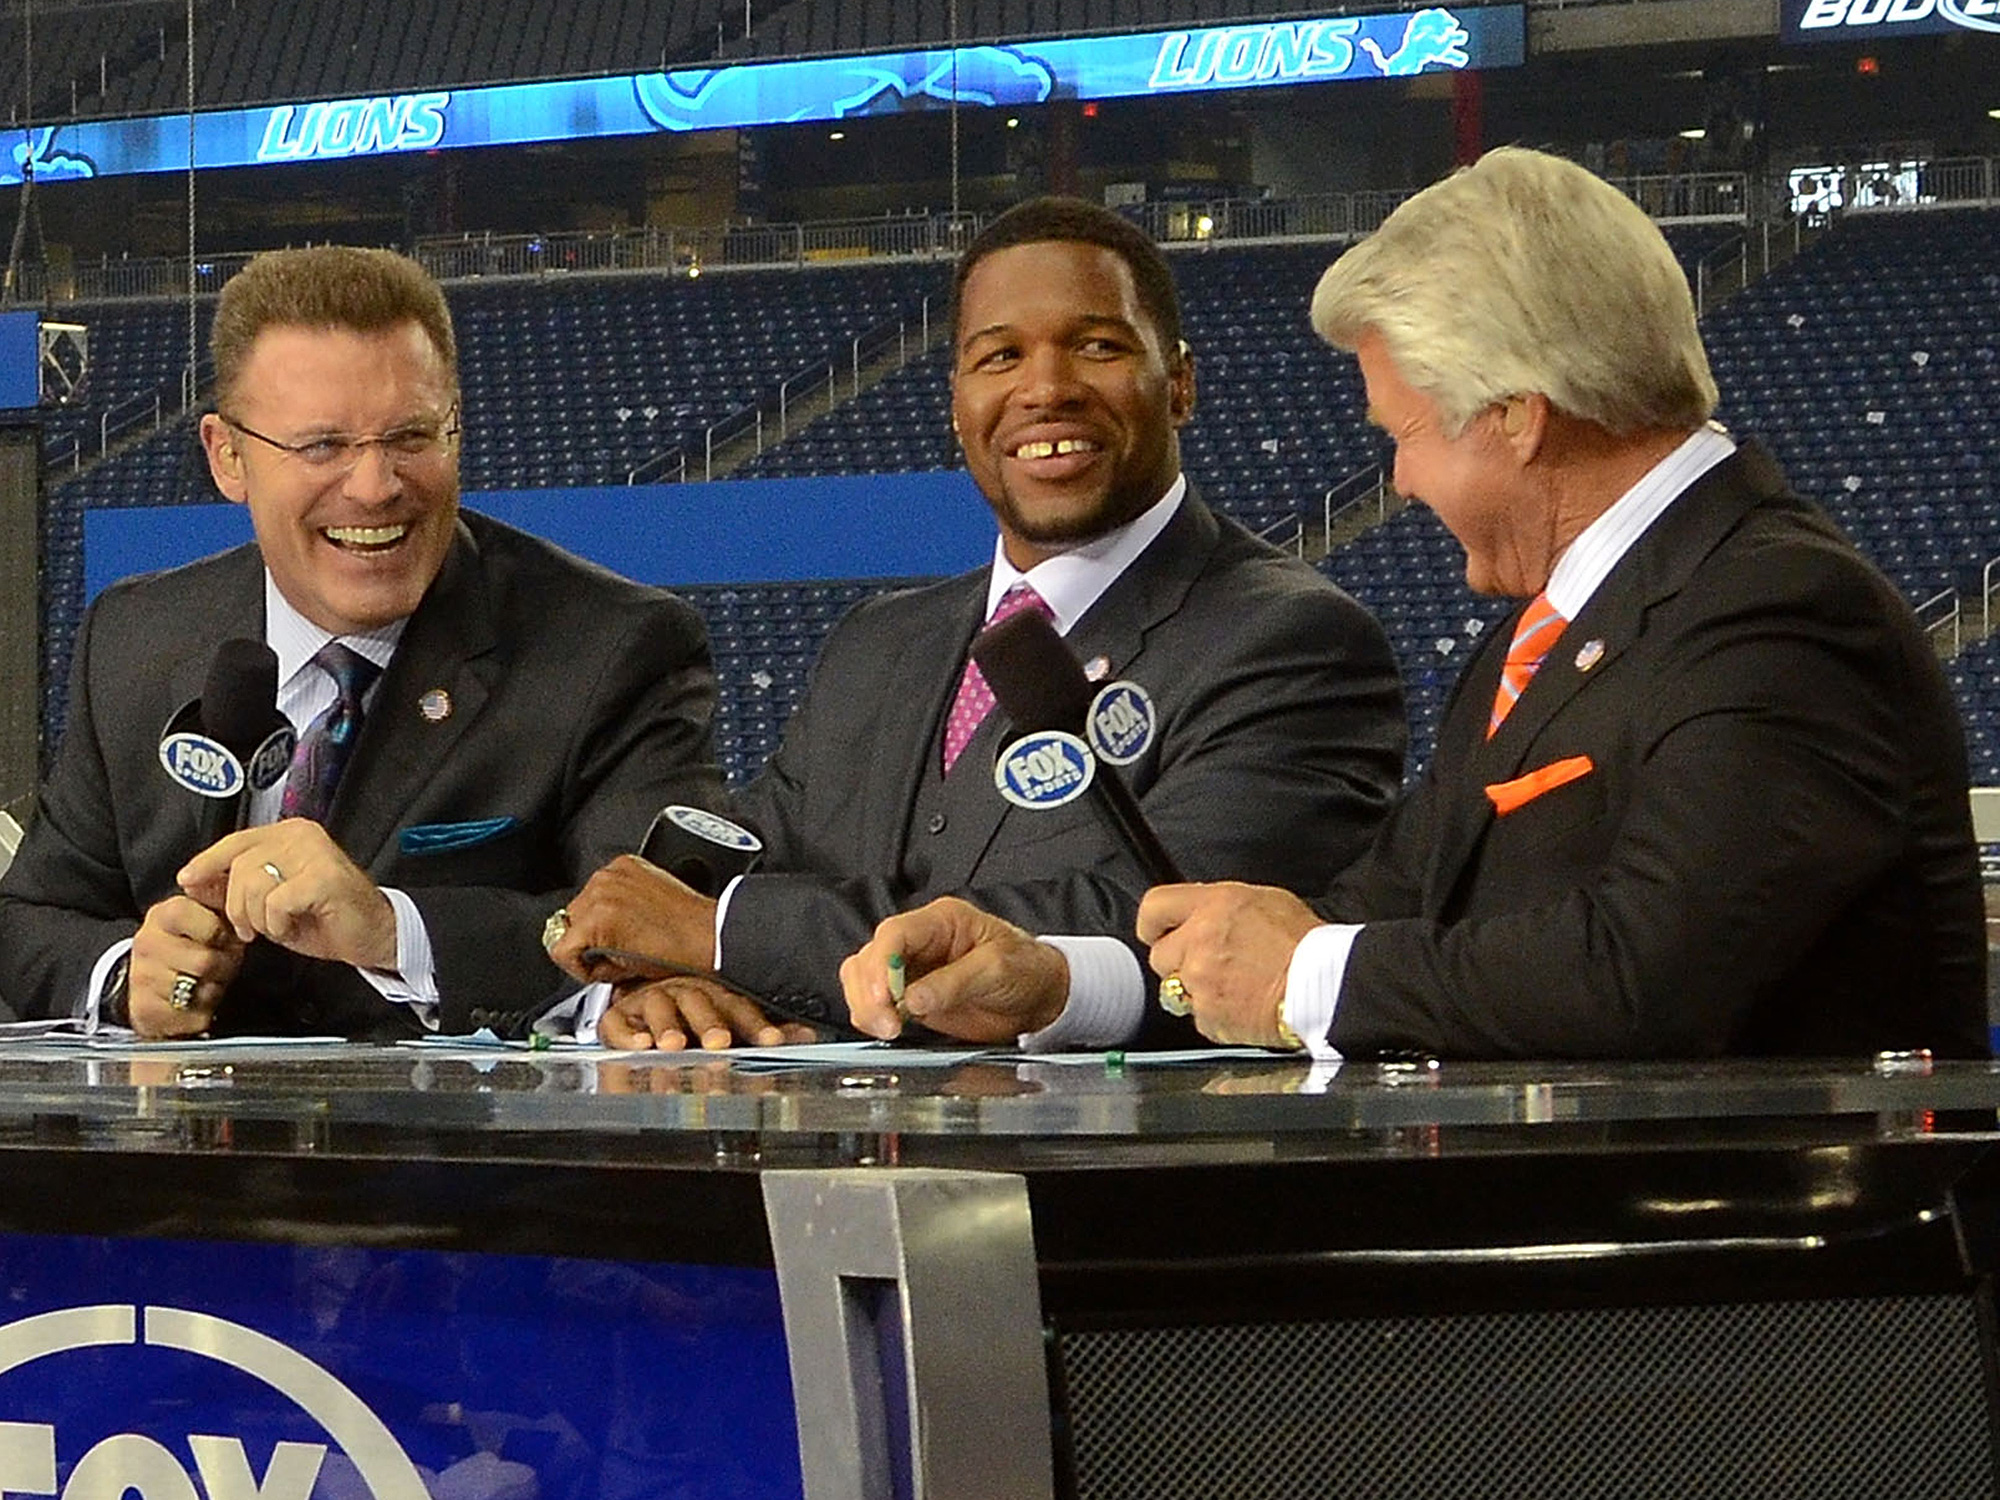 DETROIT, MI - NOVEMBER 24: Terry Bradshaw, Howie Long, Michael Strahan and Jimmy Johnson (L-R) host the FOX television NFL Postgame Show from the sidelines after the game between the Green Bay Packers and the Detroit Lions at Ford Field on November 24, 2011 in Detroit, Michigan. The Packers defeated the Lions 27-15. (Photo by Mark Cunningham/Detroit Lions/Getty Images)